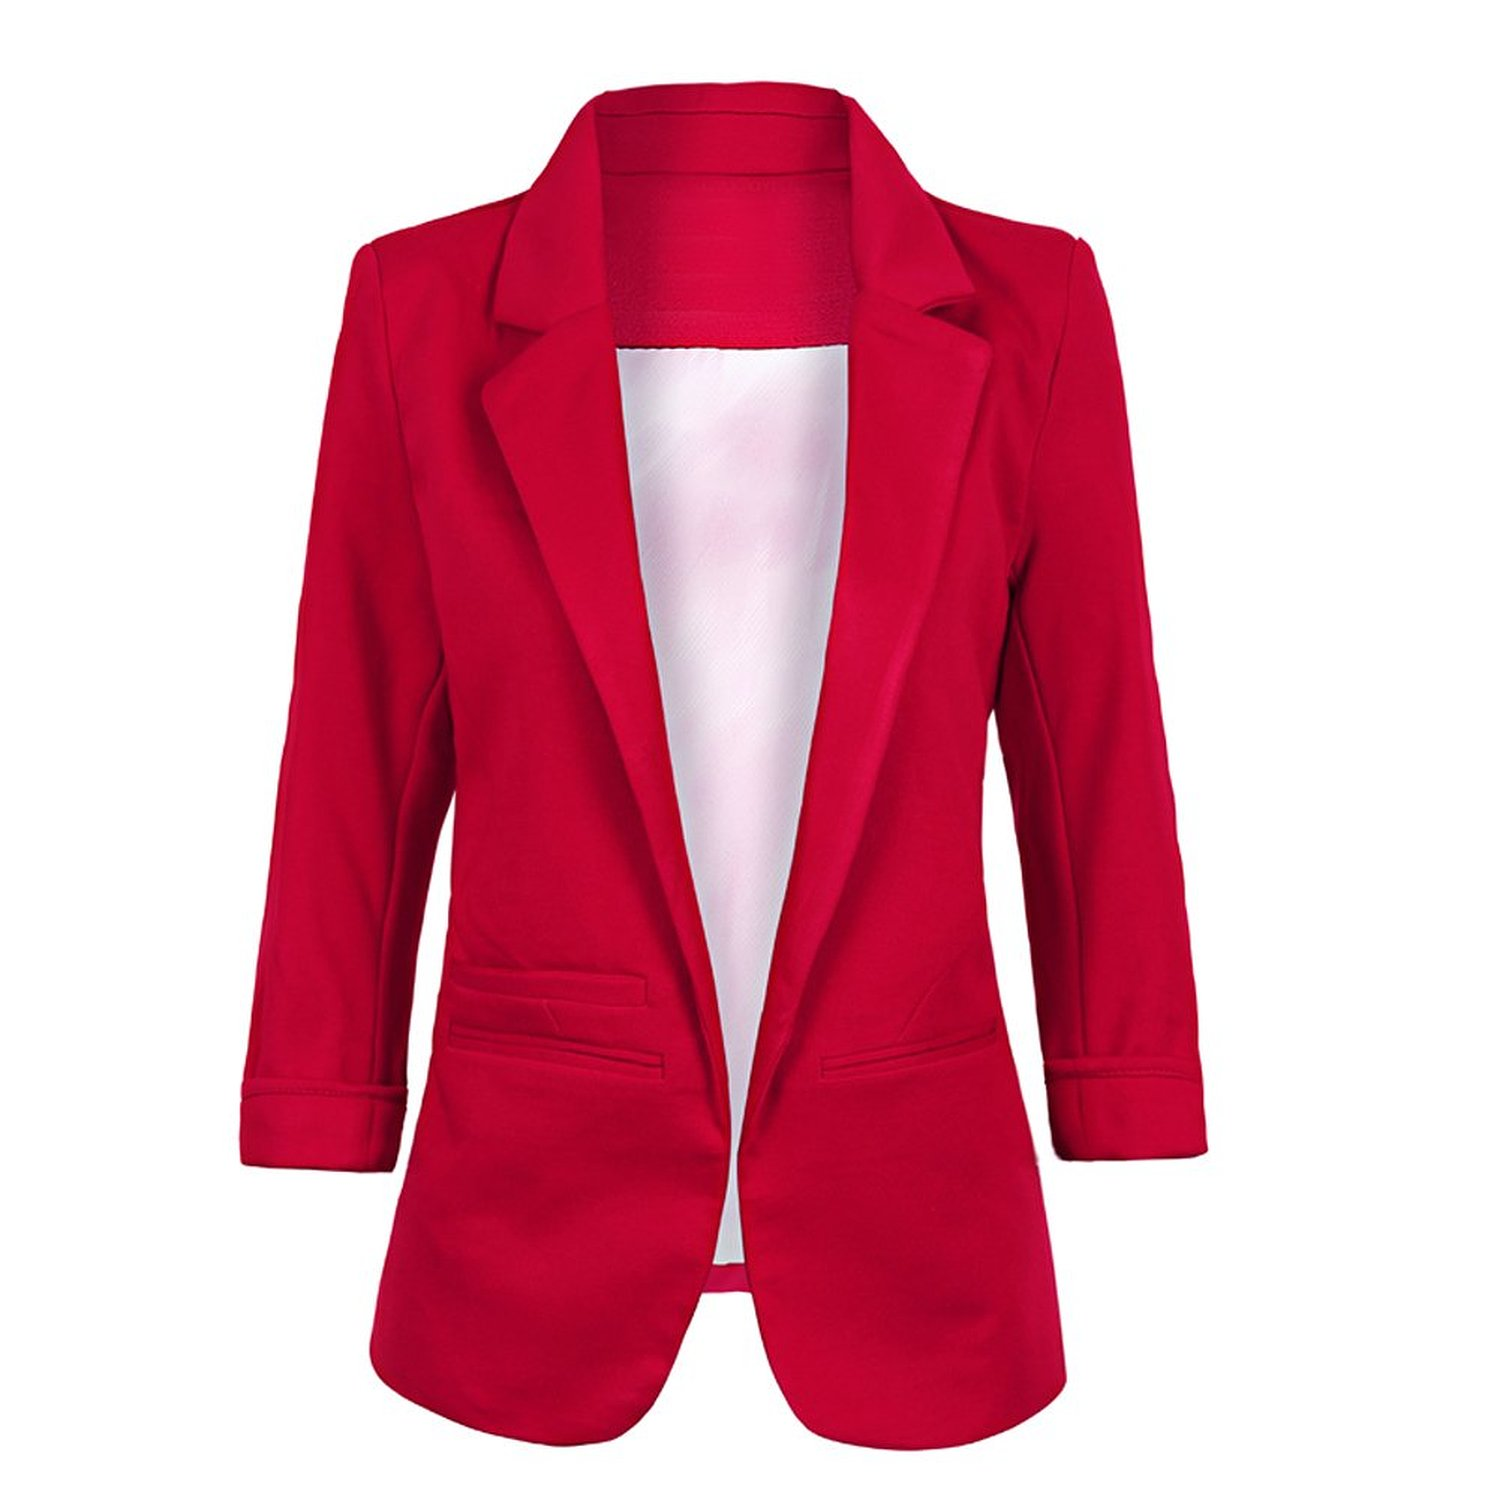 Nanafast women's boyfriend ponte rolled sleeves blazer at amazon women's clothing store: